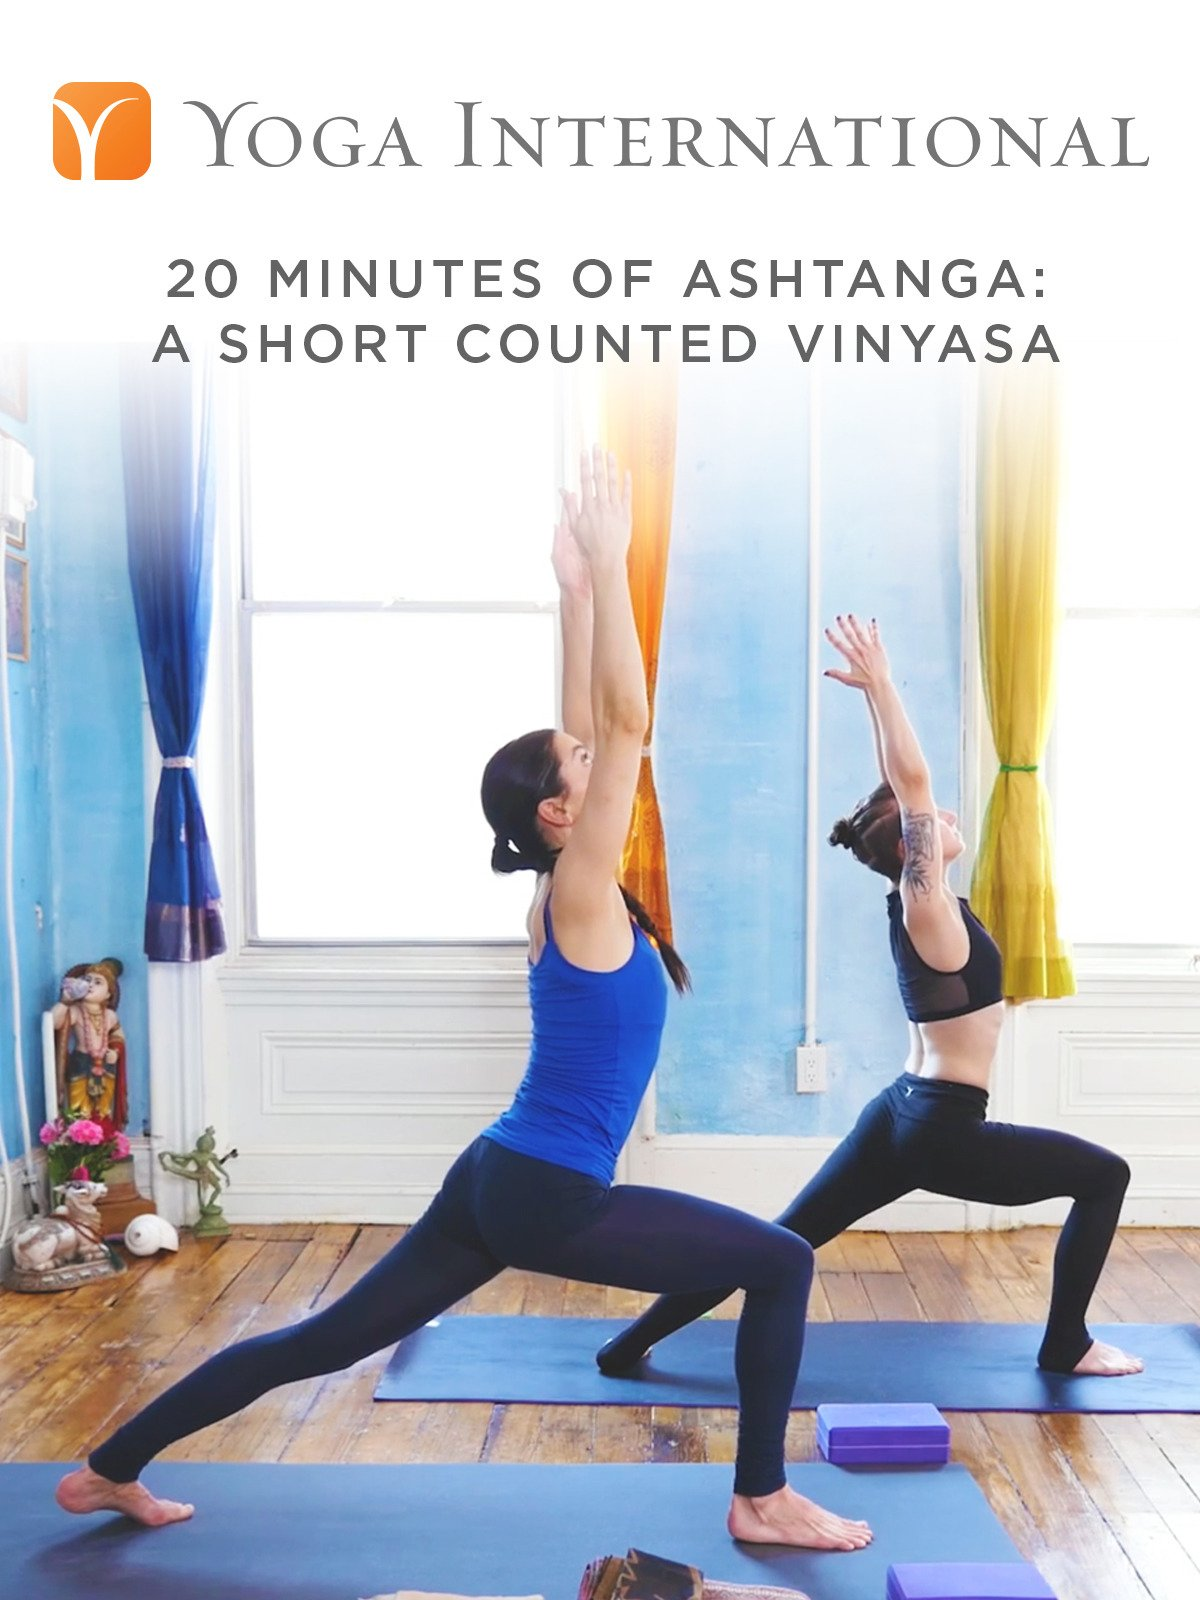 20 Minutes of Ashtanga: A Short Counted Vinyasa